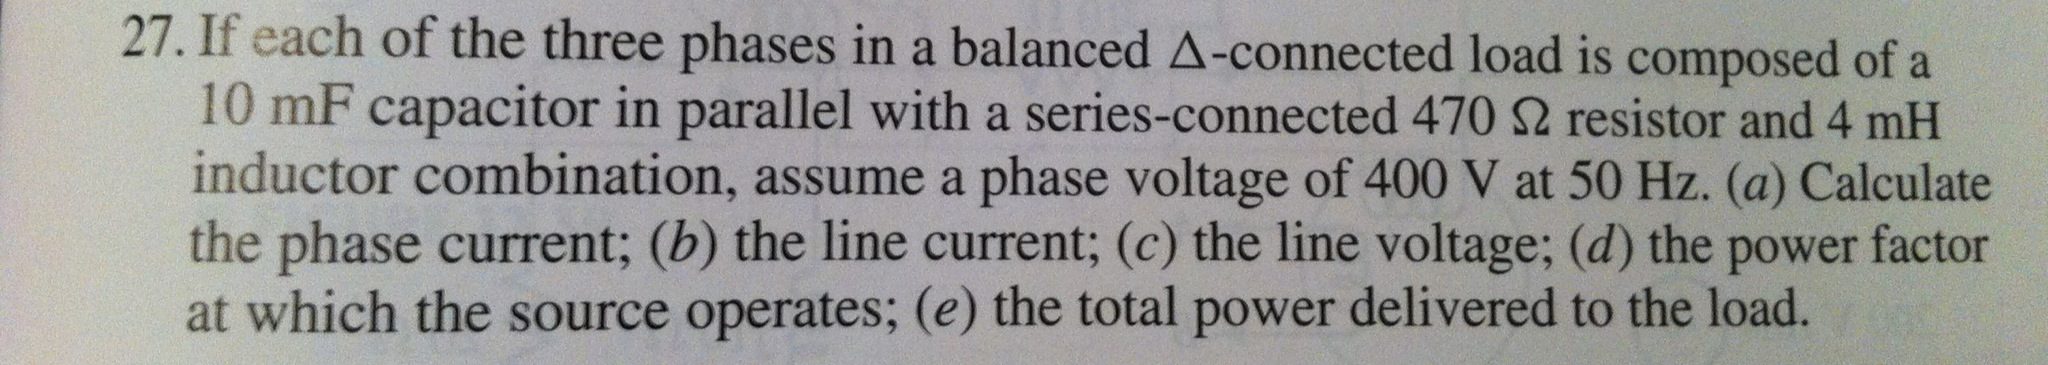 If each of the three phases in a balanced -connec